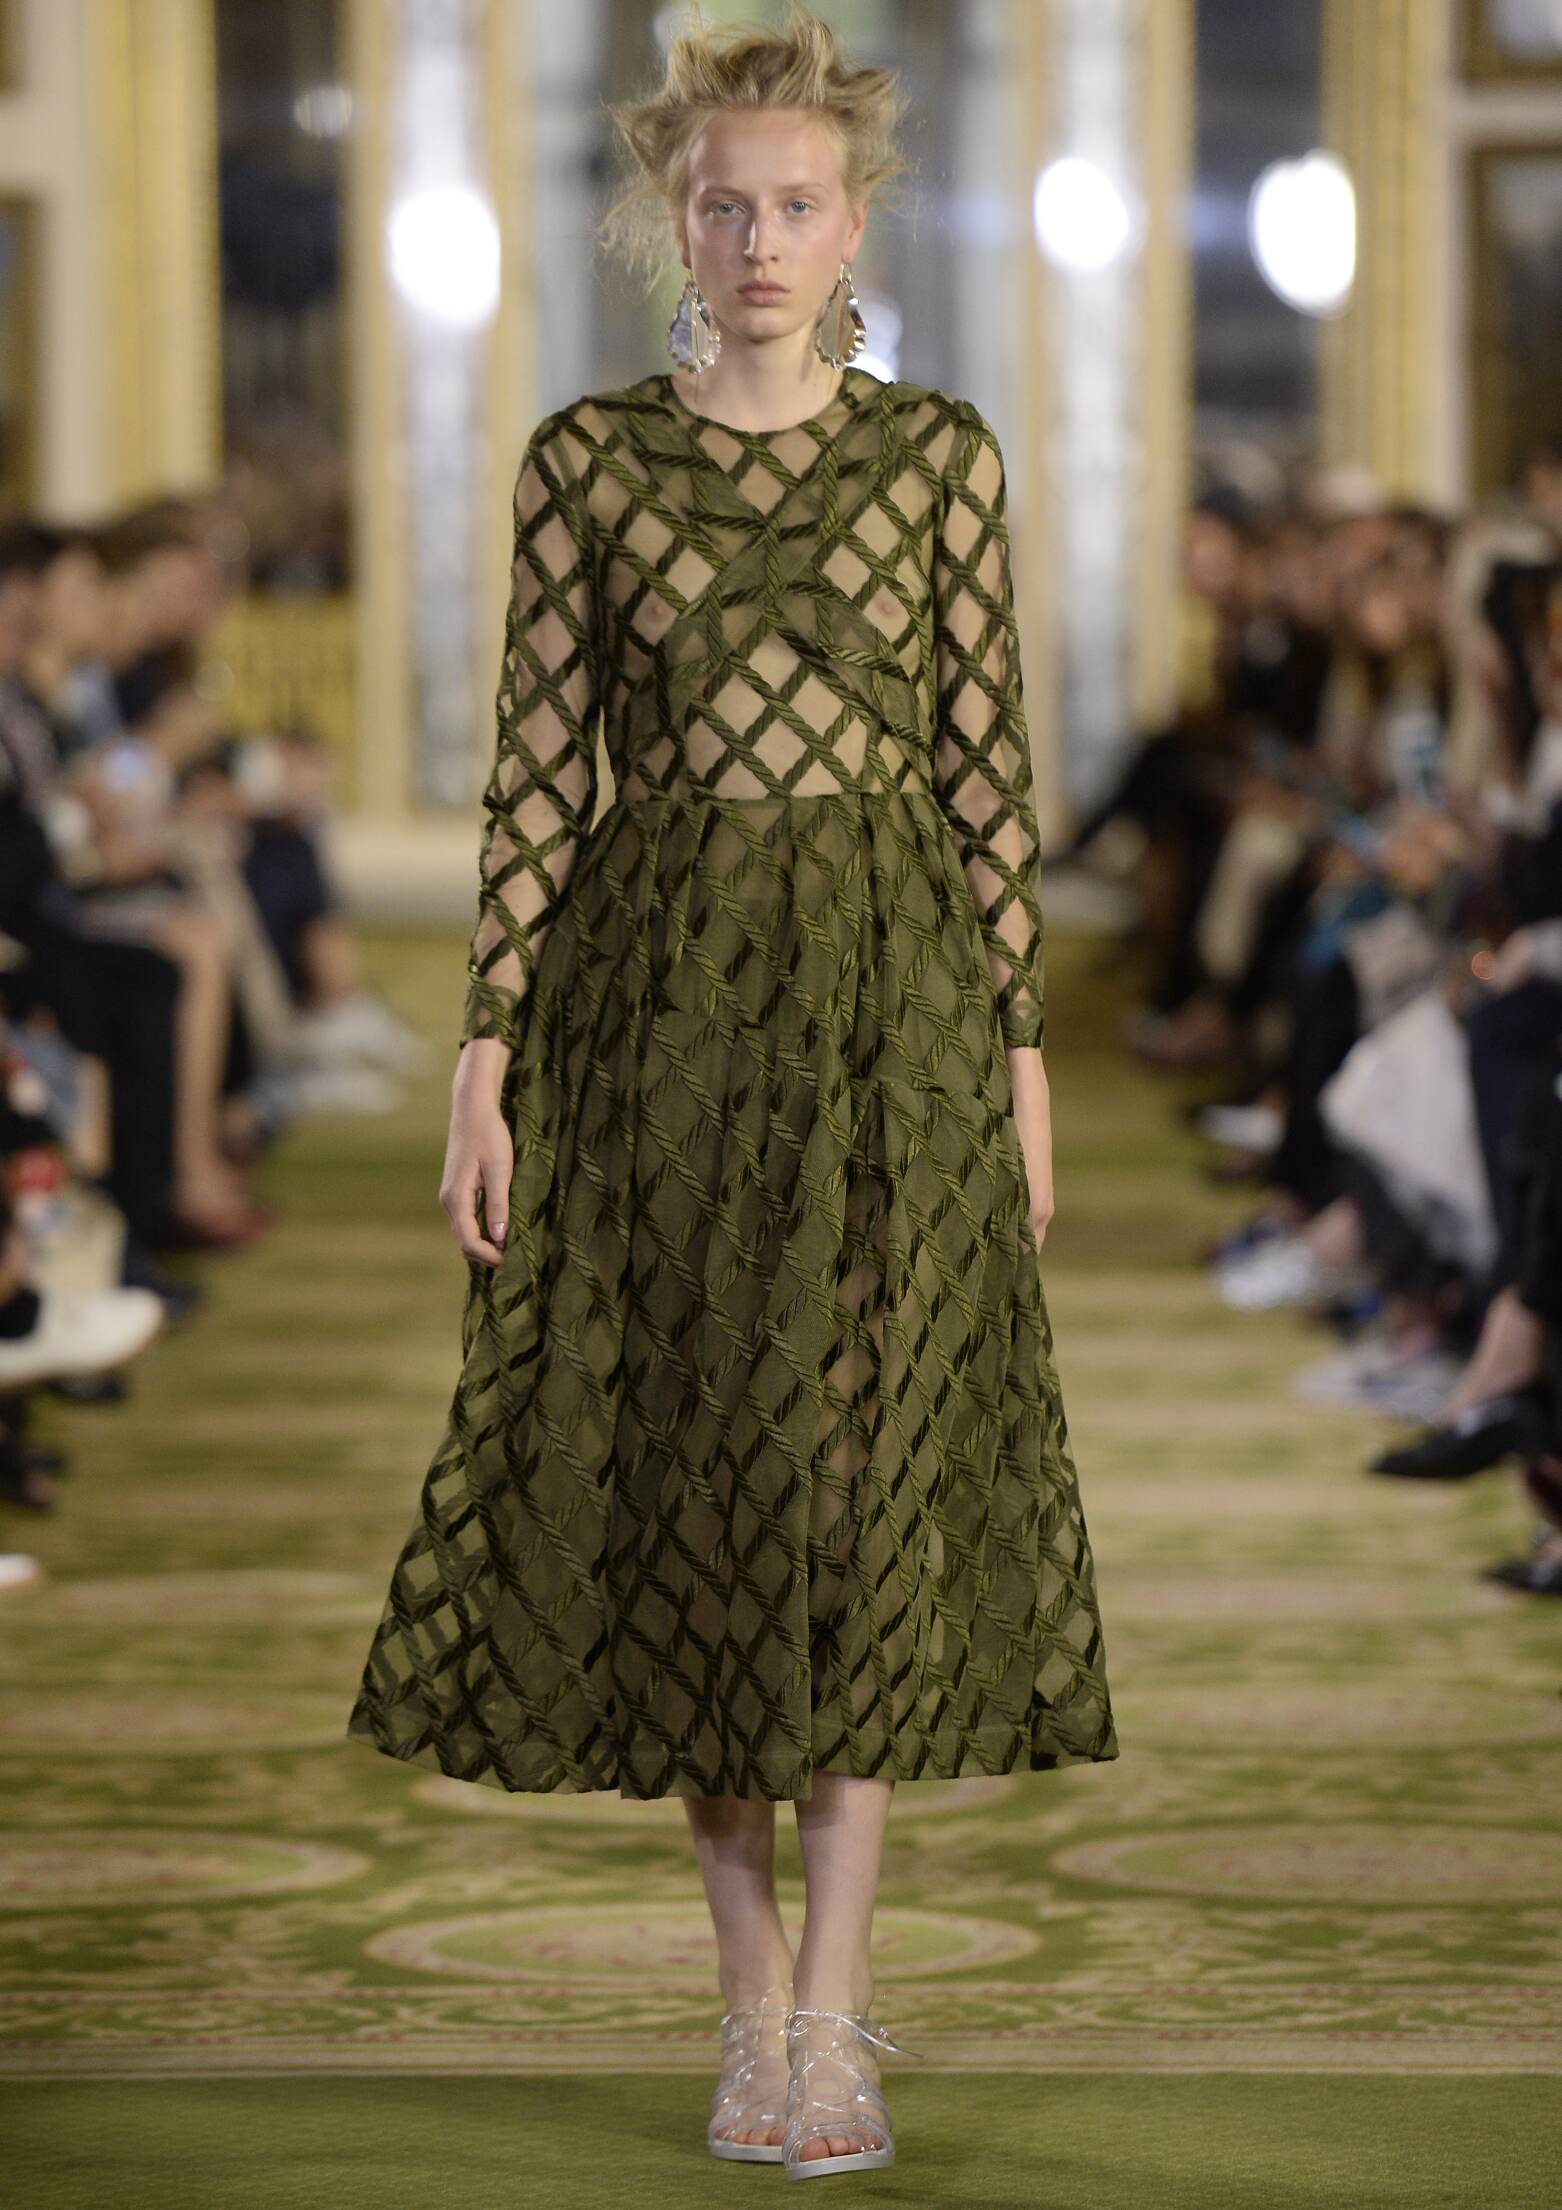 Spring Simone Rocha Collection Fashion Women Model